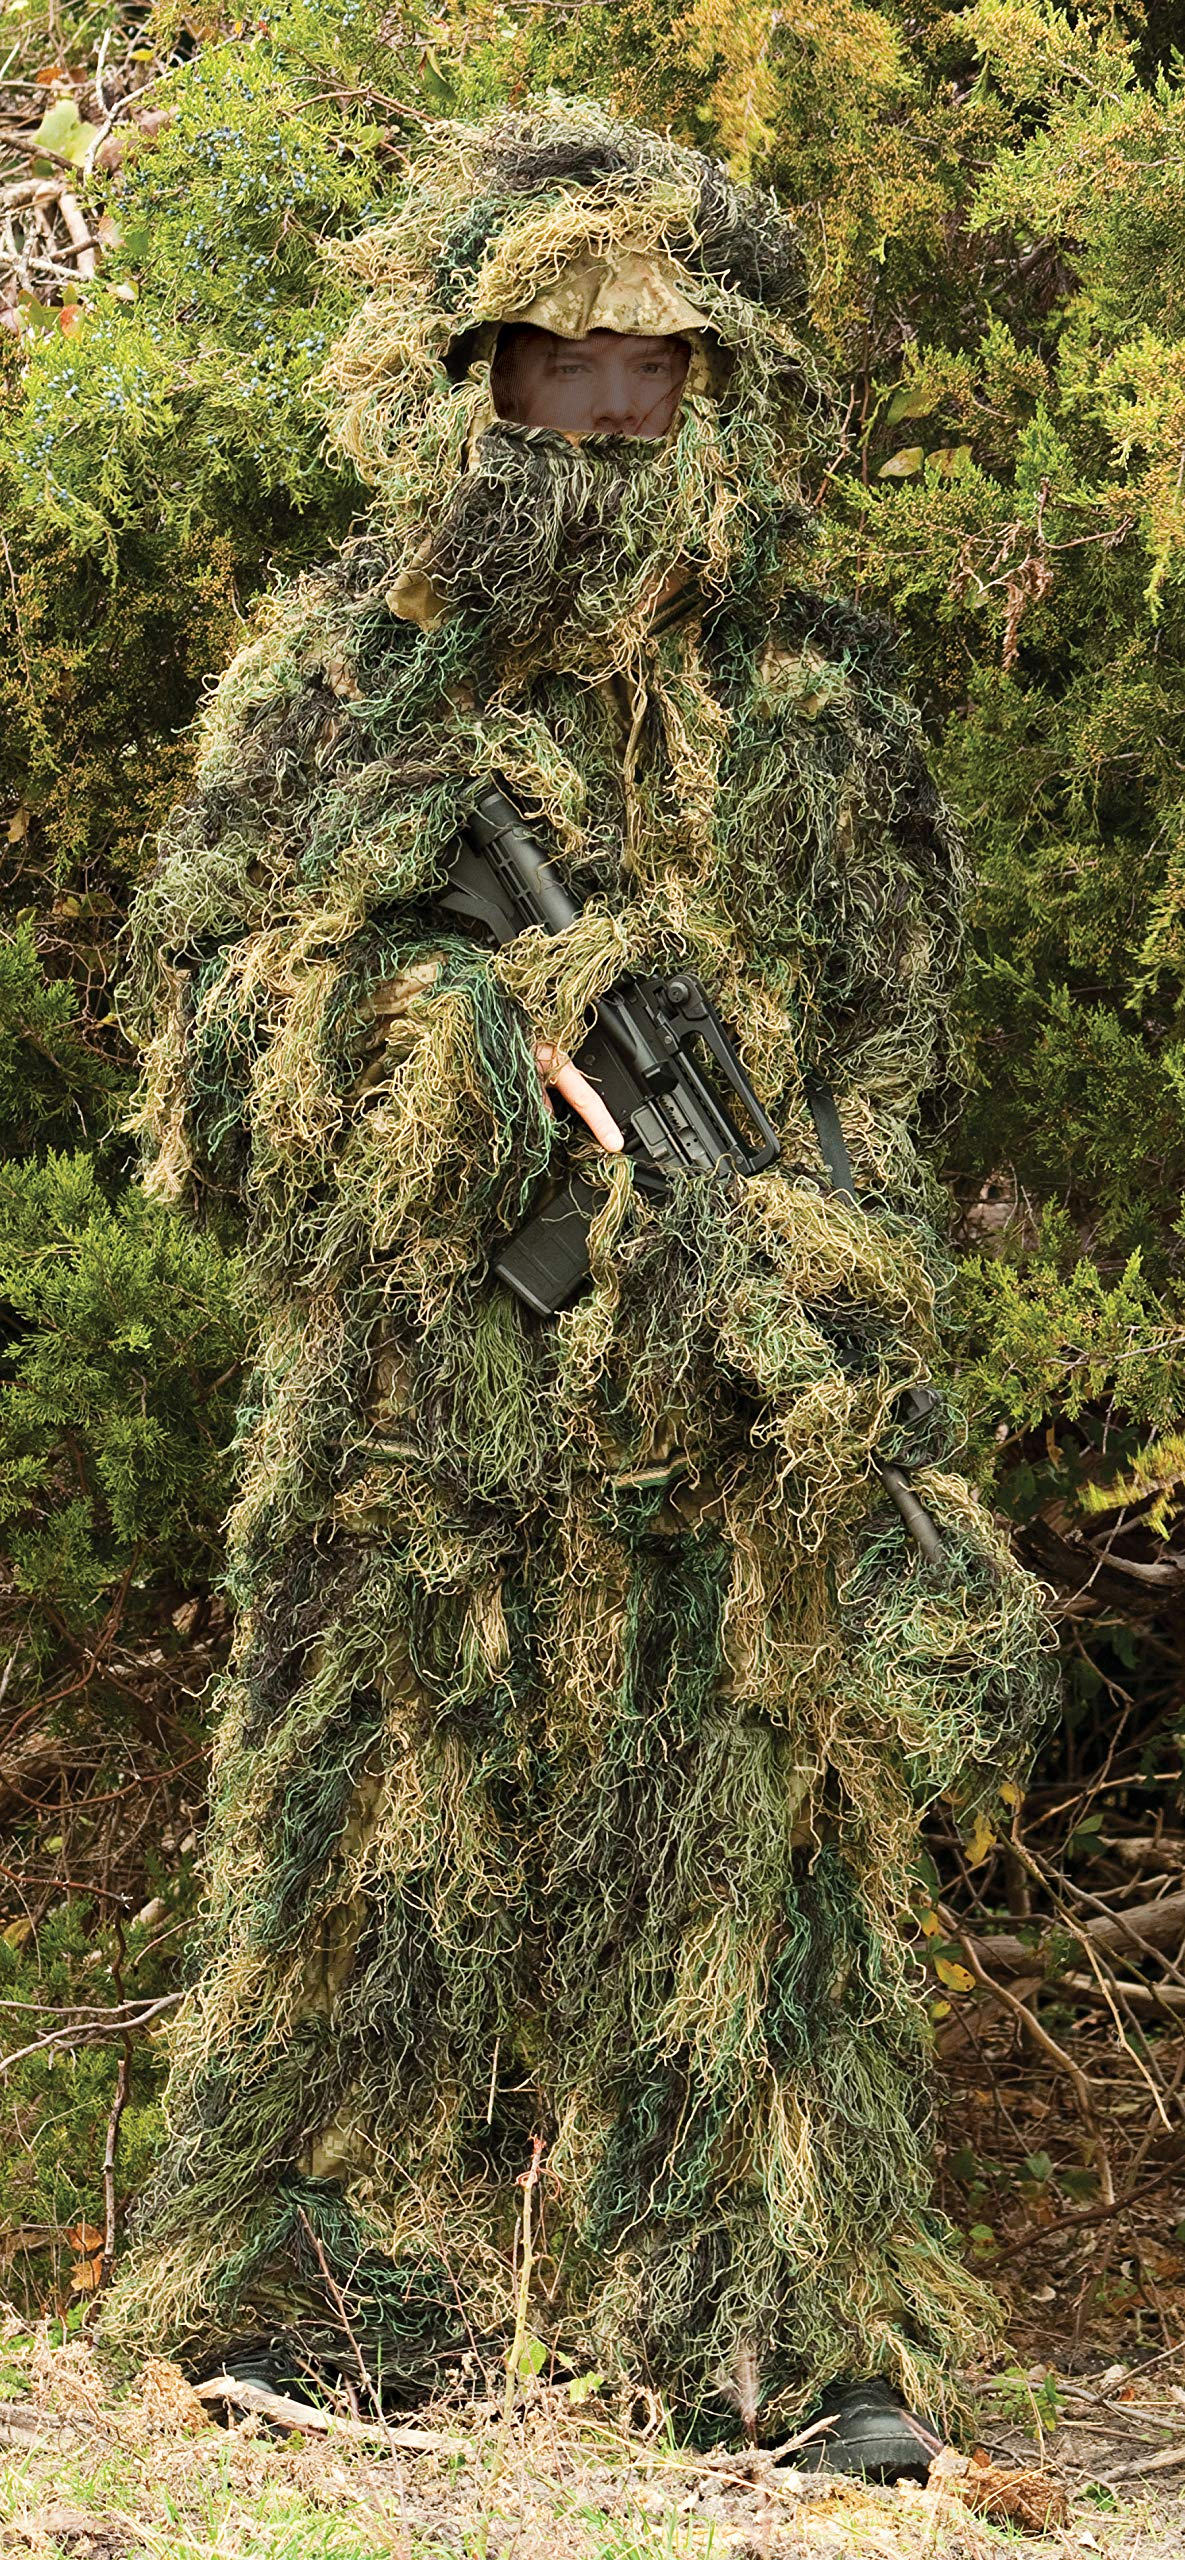 Red Rock Outdoor Gear - Ghillie Suit by Red Rock Outdoor Gear (Image #2)